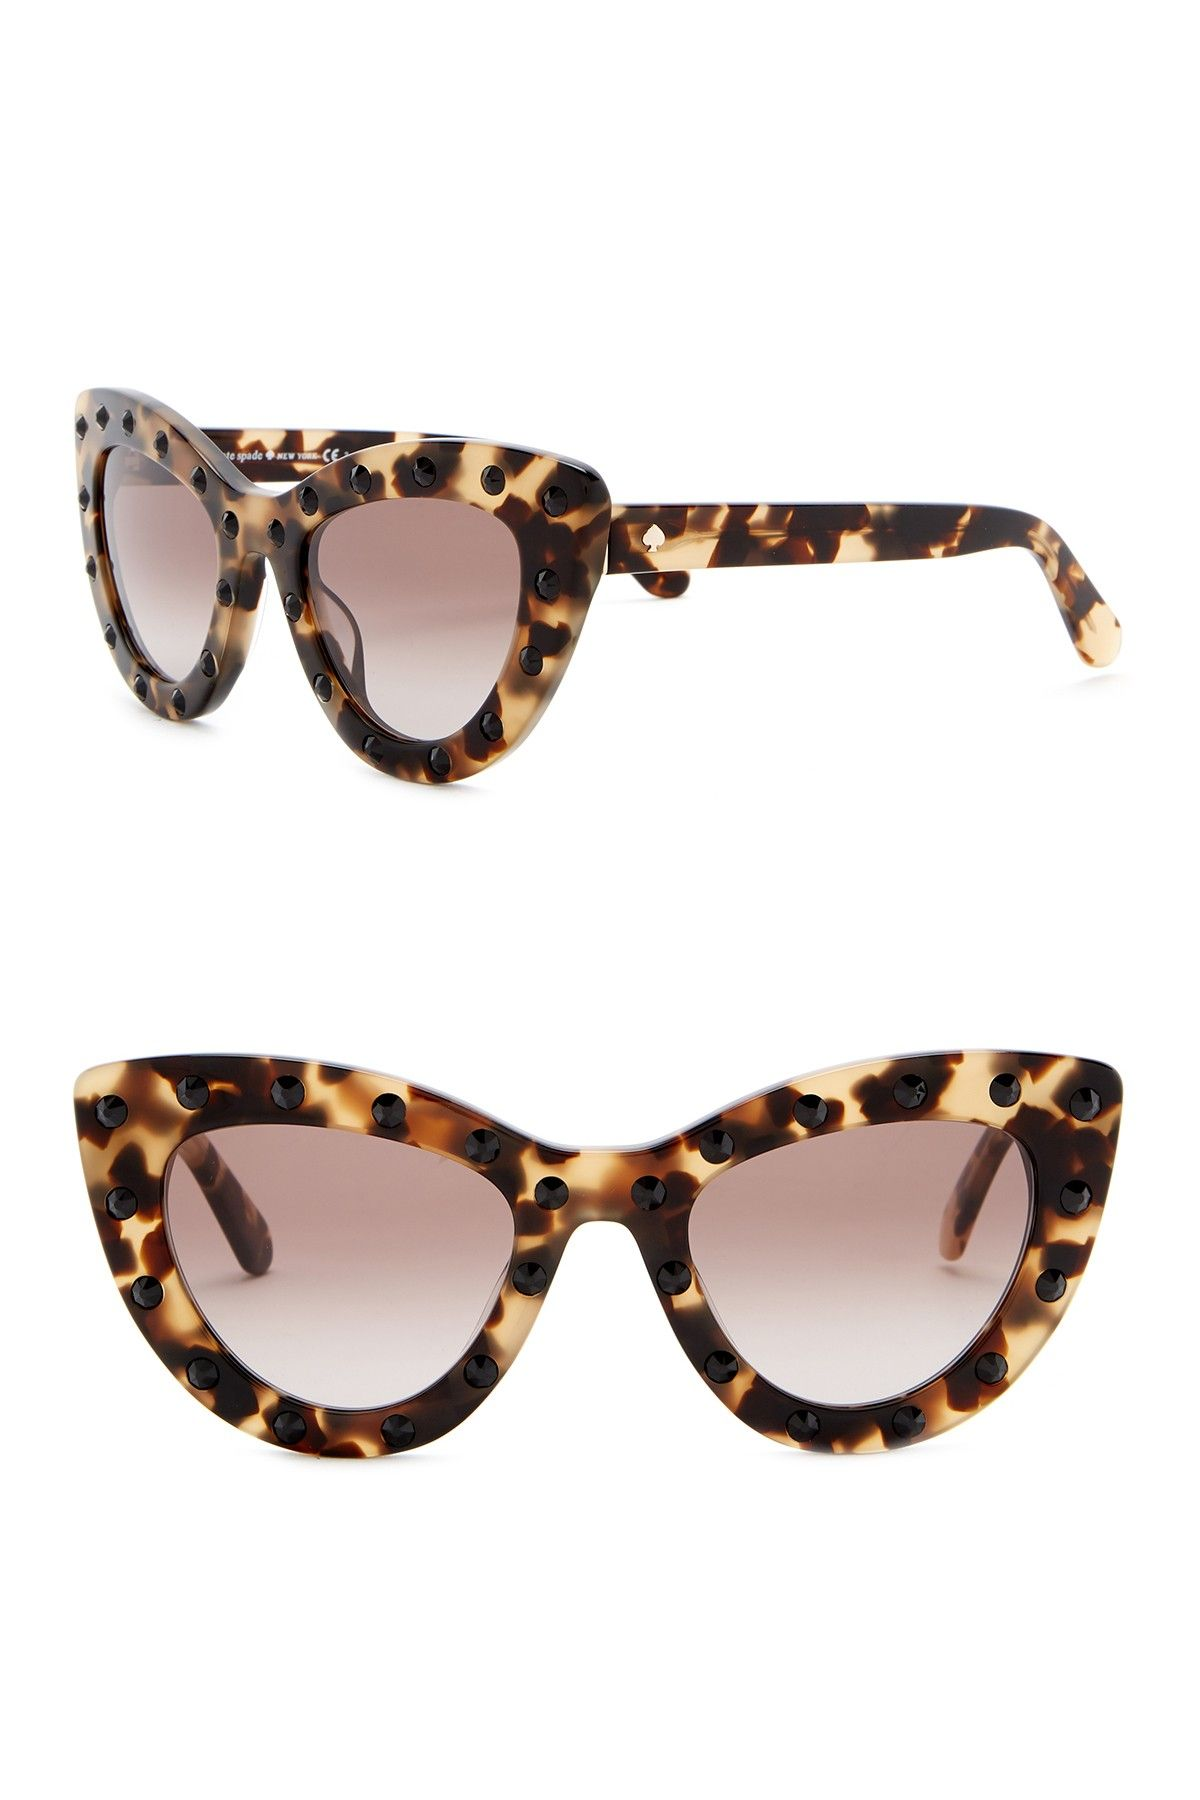 818f199a132 luann 50mm studded cat eye sunglasses by kate spade new york on   nordstrom rack